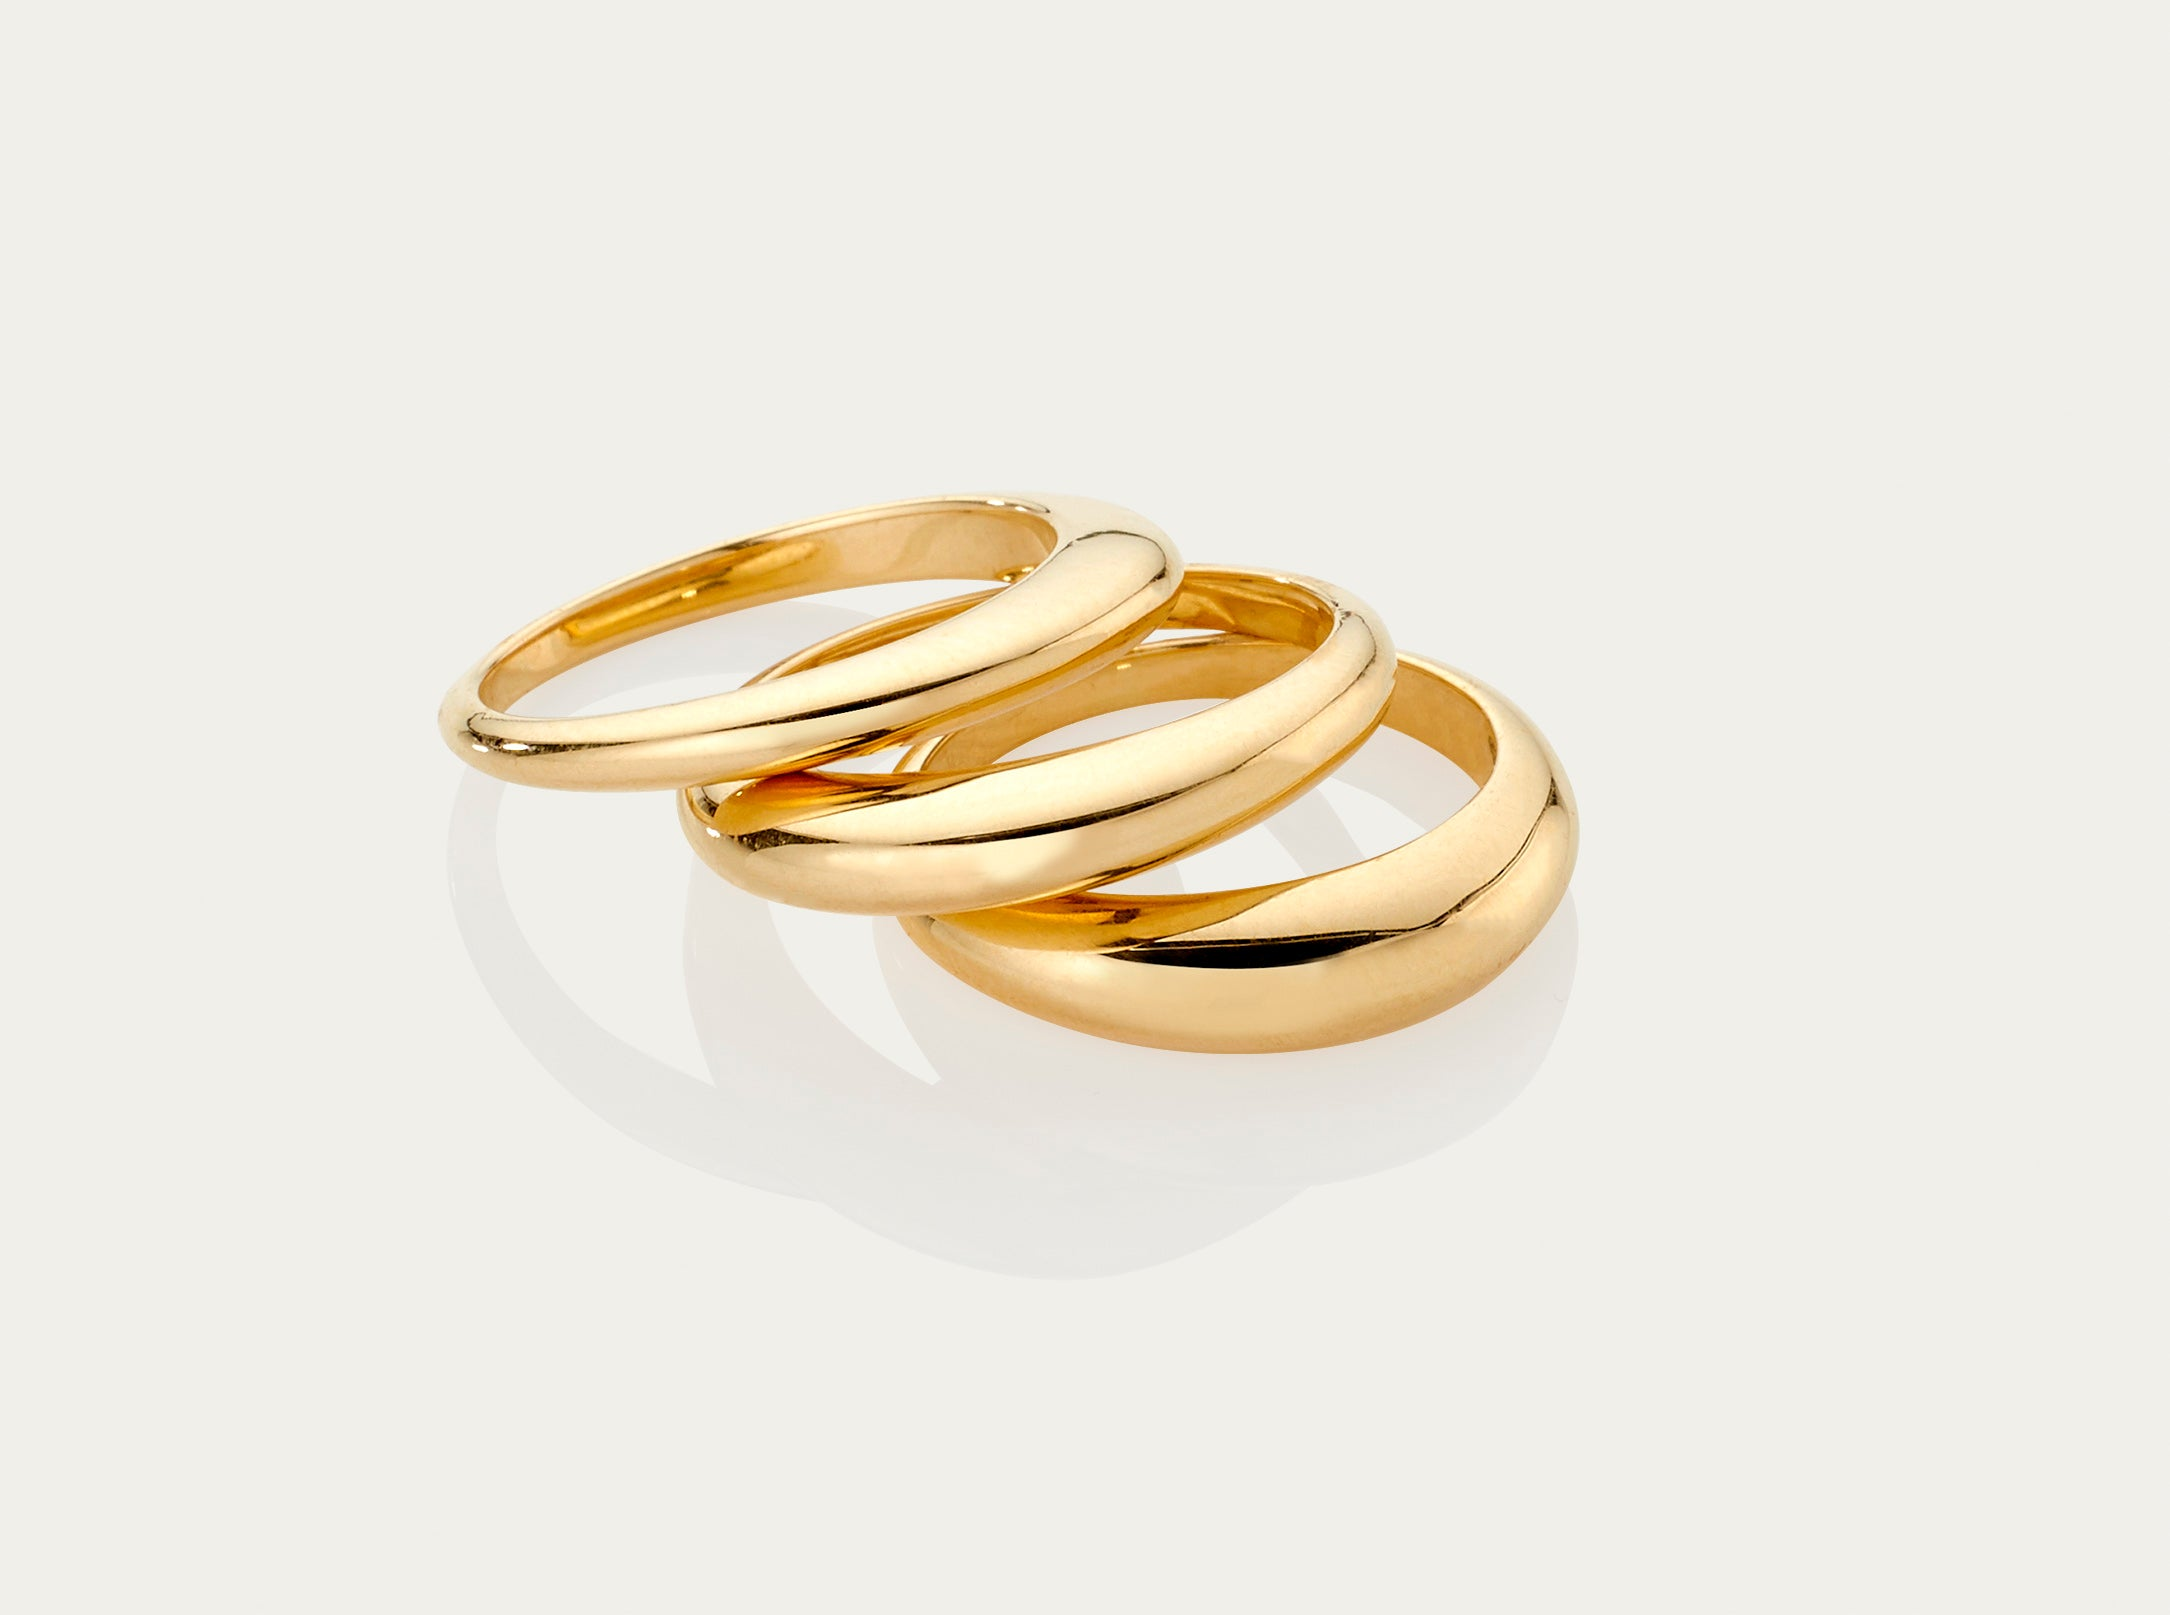 Lune 18K yellow gold ring small 3mm medium 4mm large 5mm